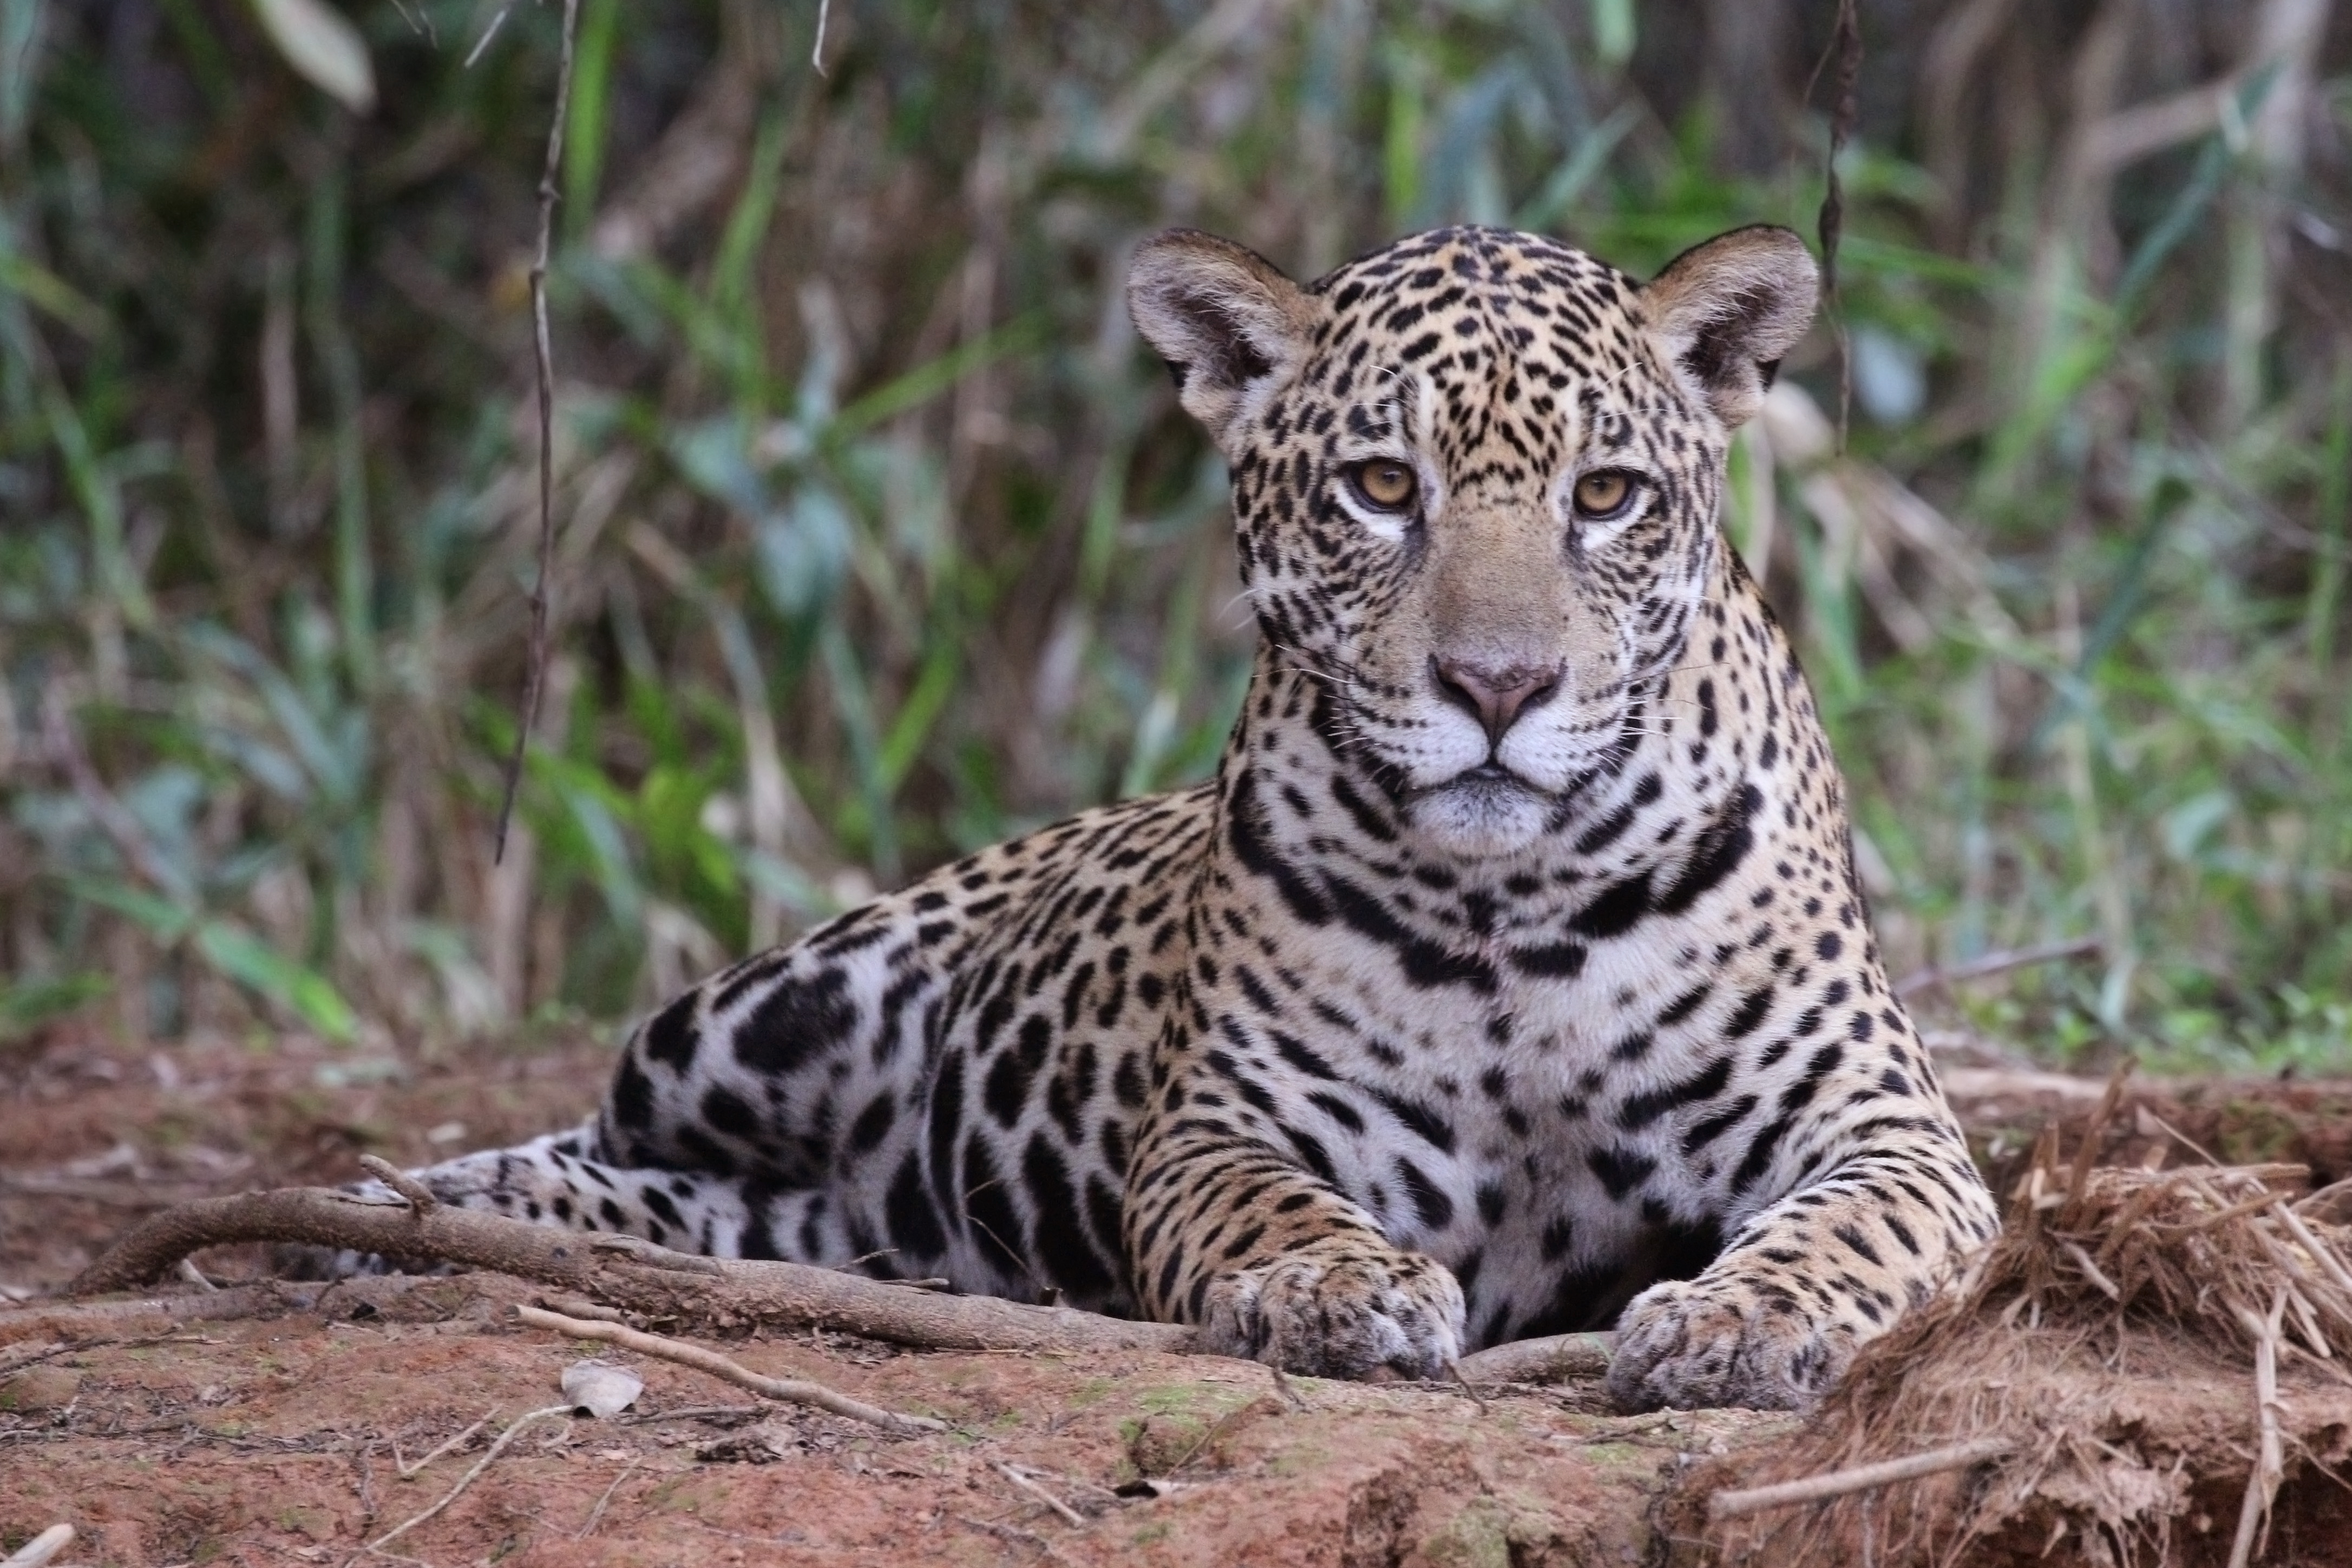 Nocturnal Animals Images Jaguar HD Wallpaper And Background Photos